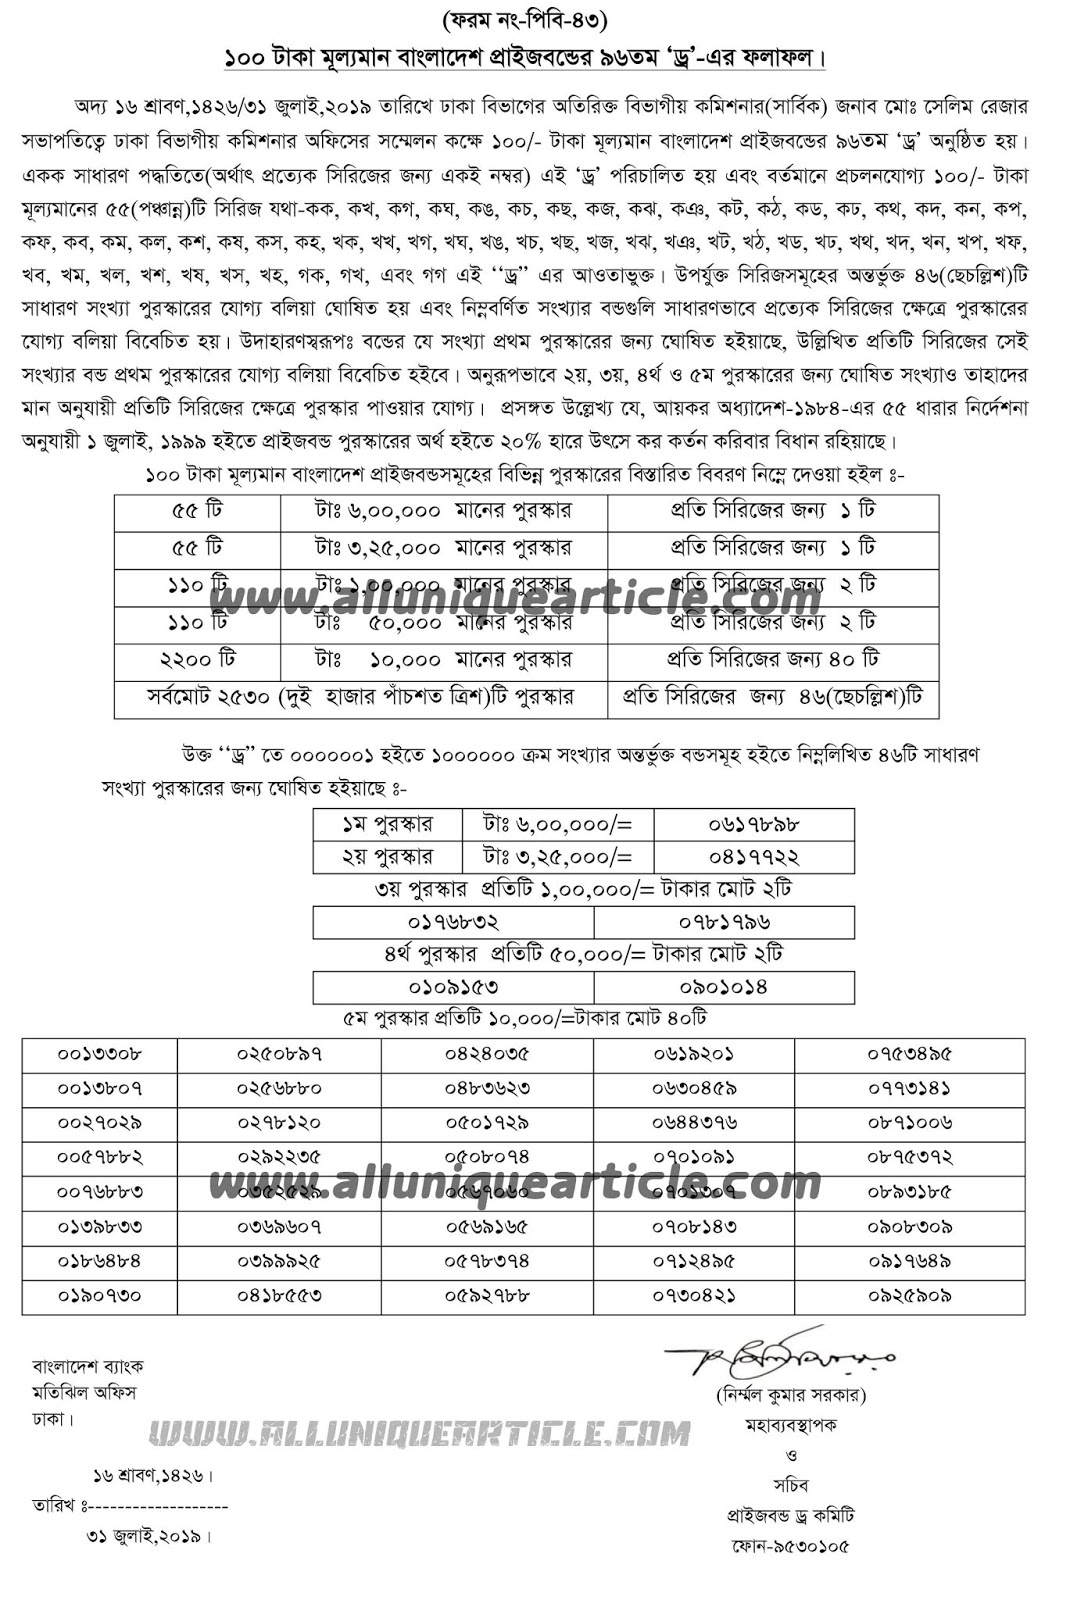 Bangladesh Bank Prize Bond Lottery Draw Result